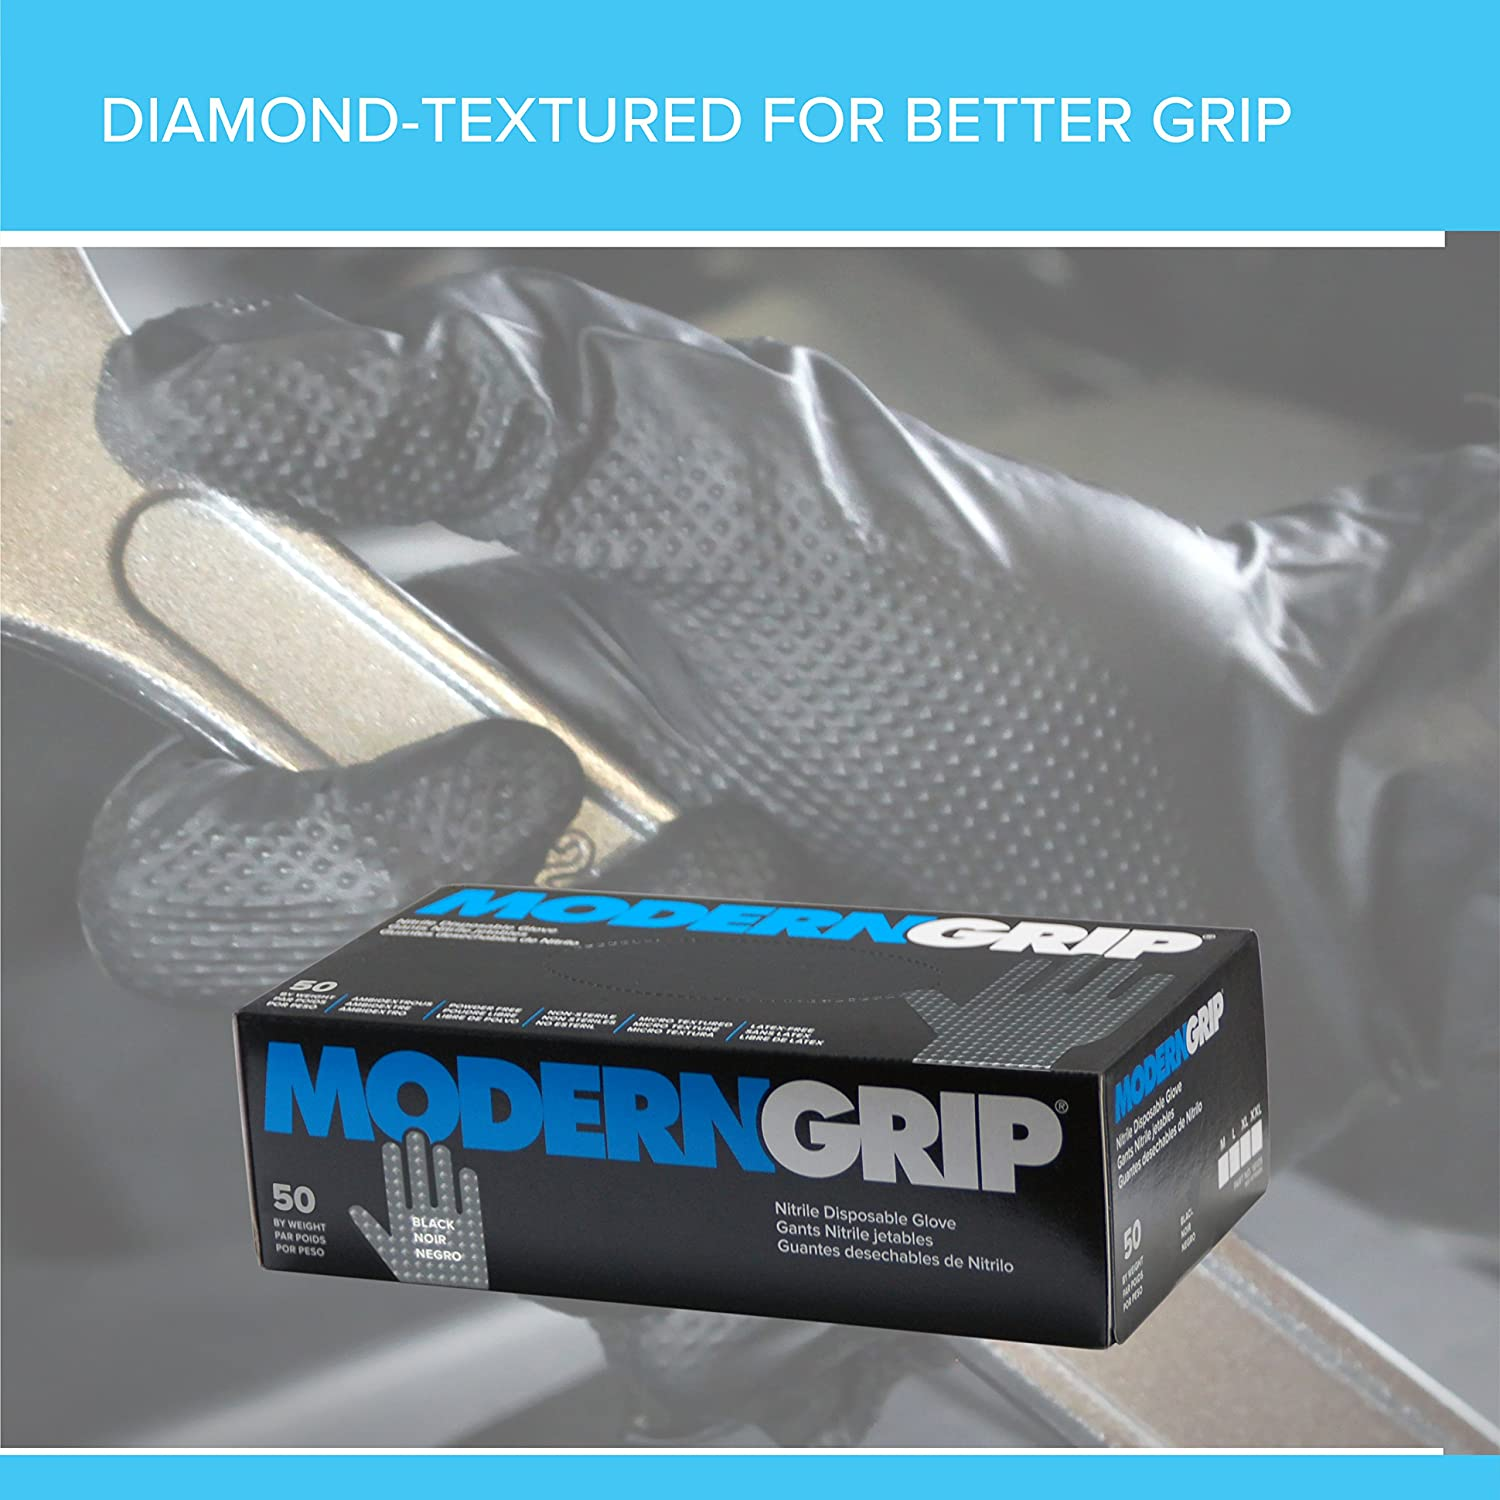 Modern Grip 18195-M Nitrile 8 mil Thickness Premium Disposable Heavy Duty Gloves - Industrial and Household, Powder Free, Latex Free, Diamond Textured for ...